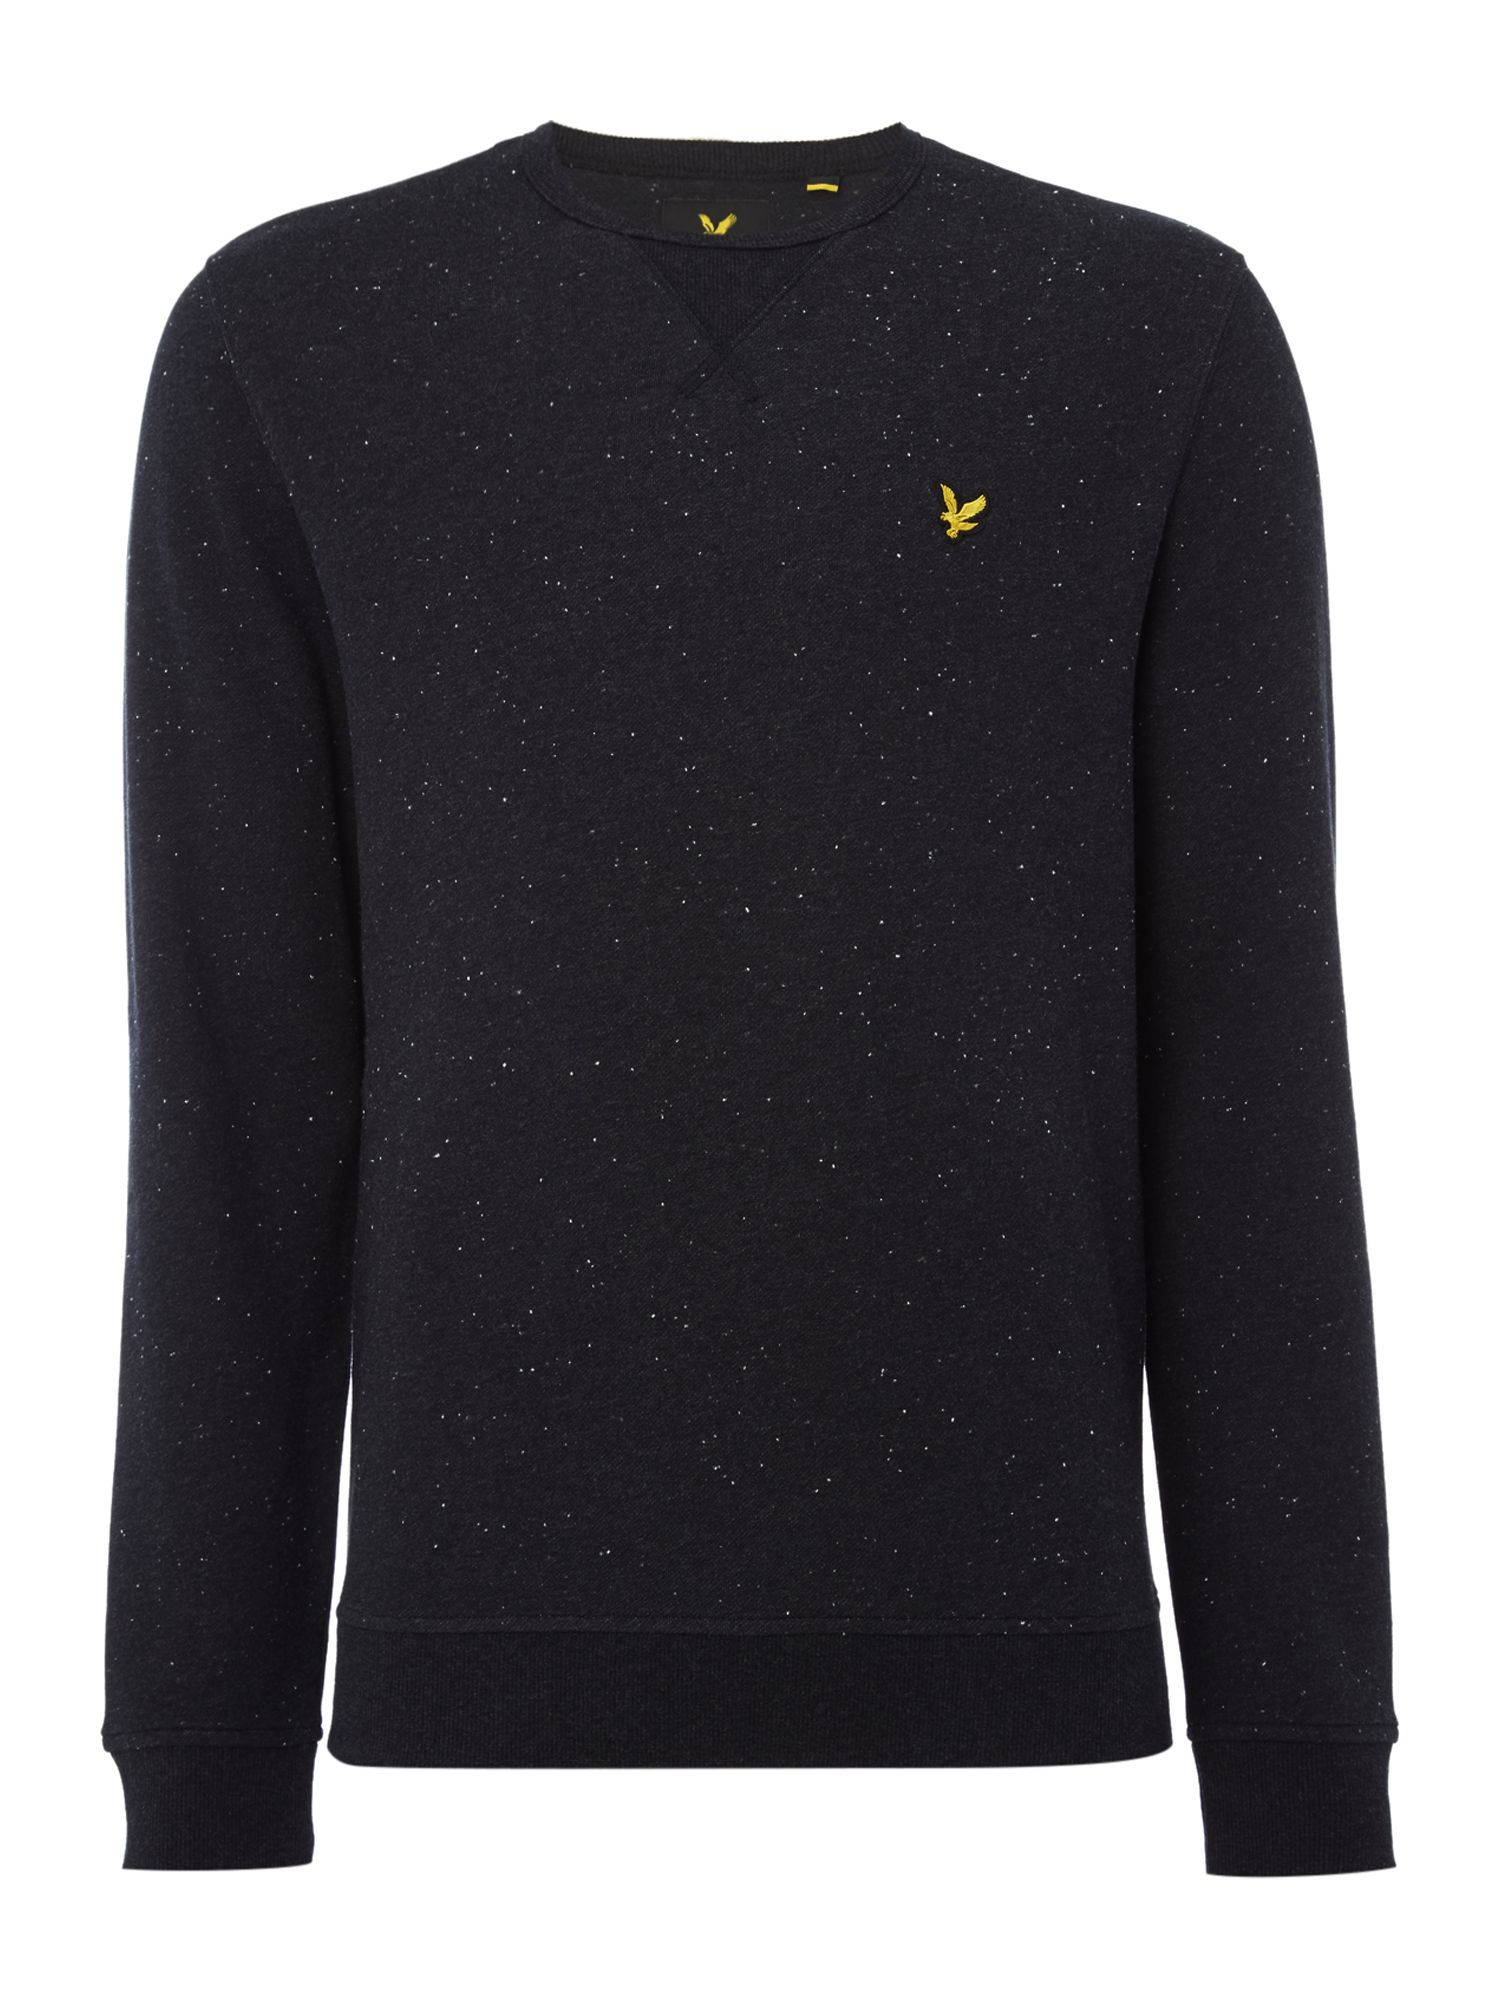 Men's Lyle and Scott Brushed fleck crew neck sweatshirt, Black